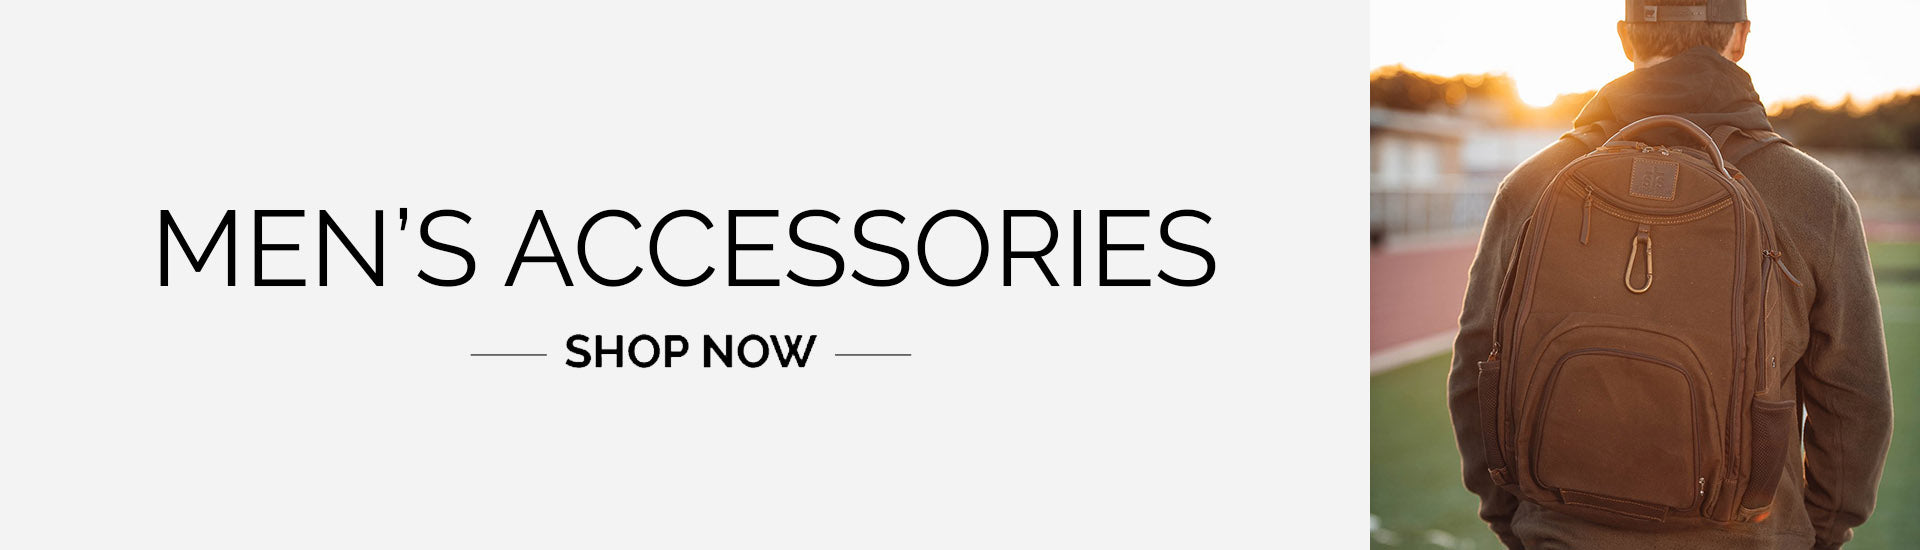 Men's Accessories Shop now - STS Ranchwear